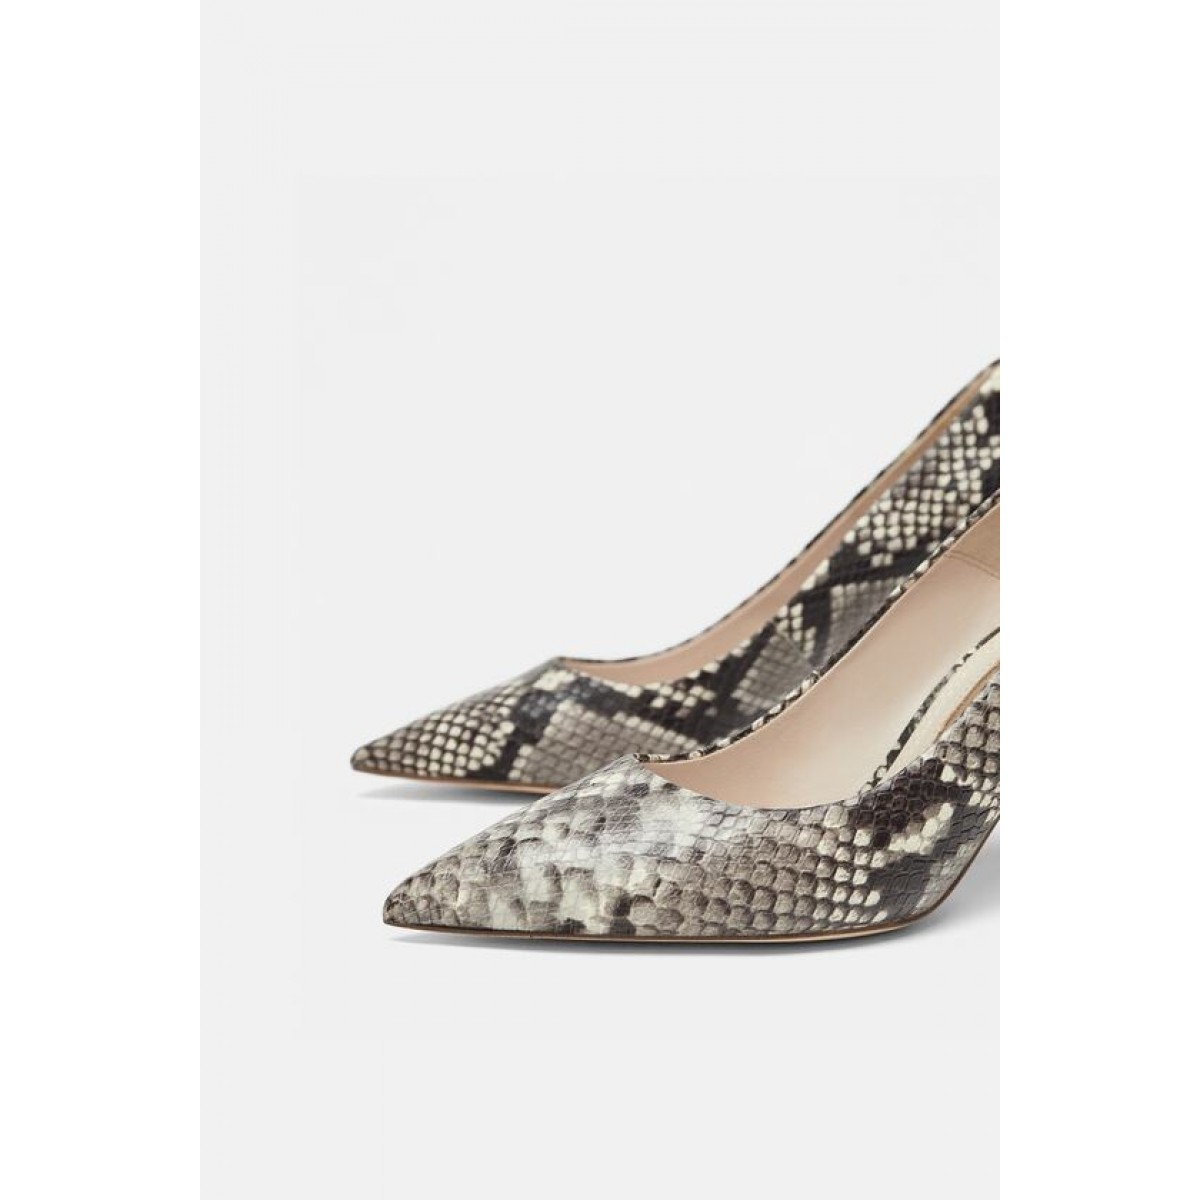 Zara Snakeskin Print Leather High Heels